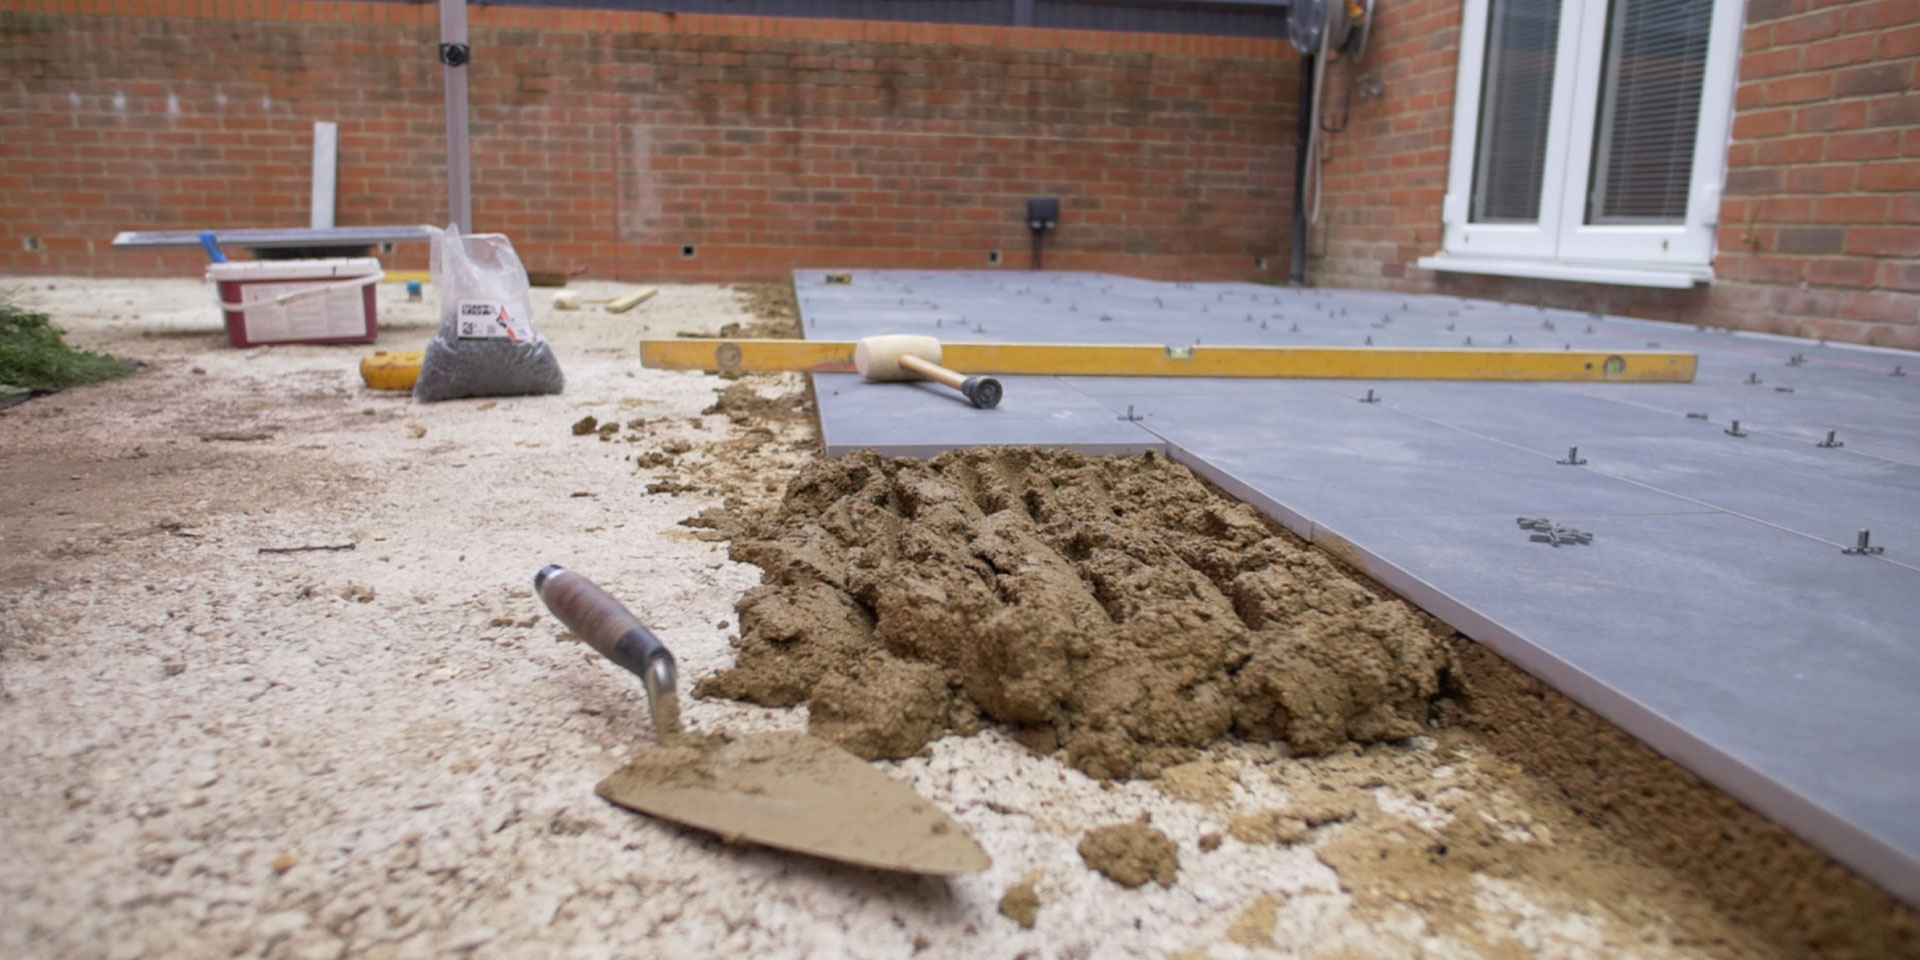 A PQC with mortar ready to lay the next porcelain slab